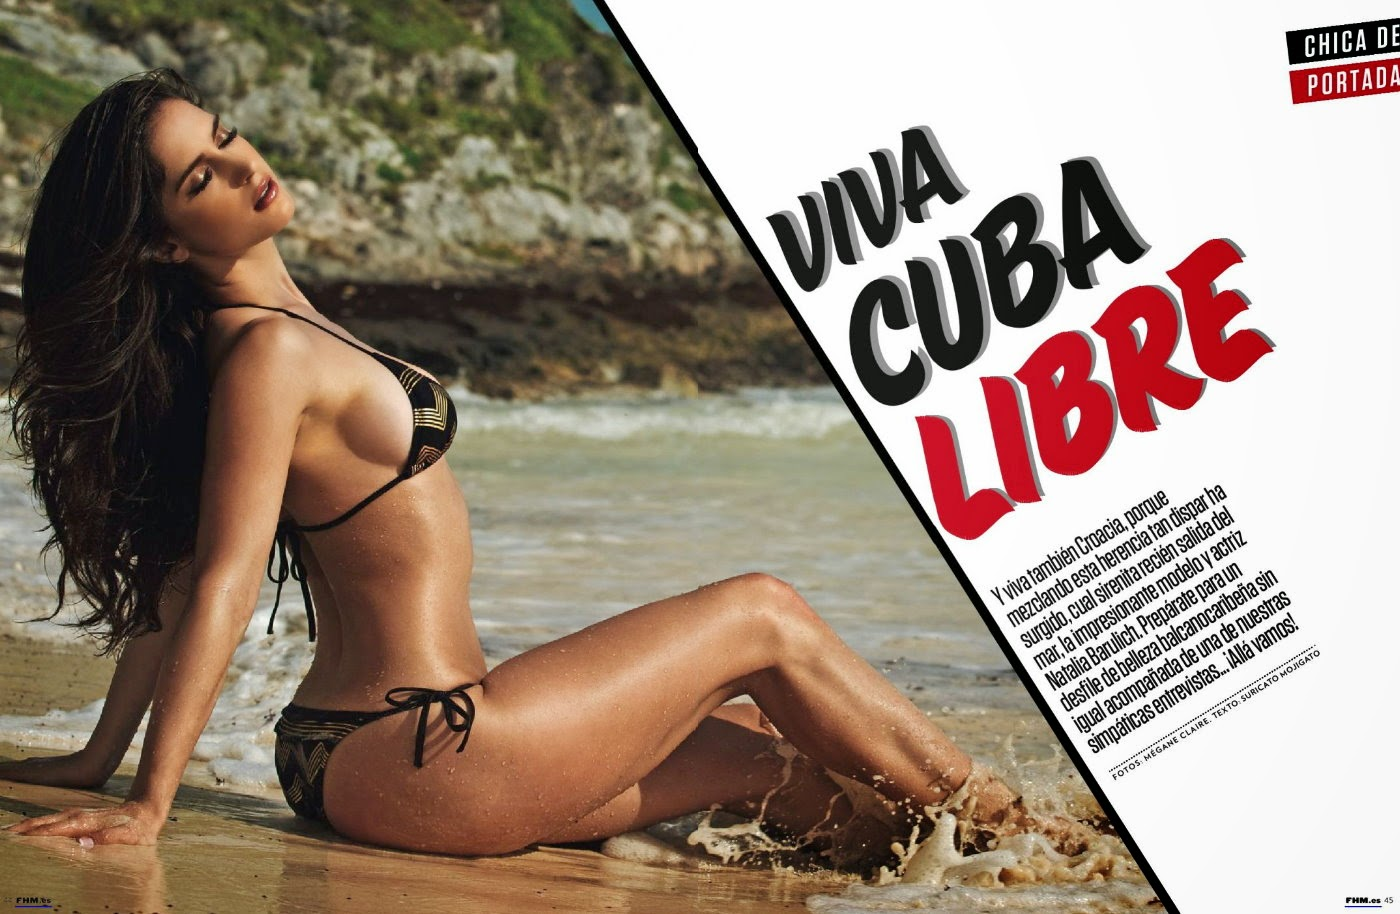 7 Auto Electrical Wiring Diagram Model Icp Ge100f141 Beautiful Xyz Gossip Natalia Barulich For Fhm May 2015